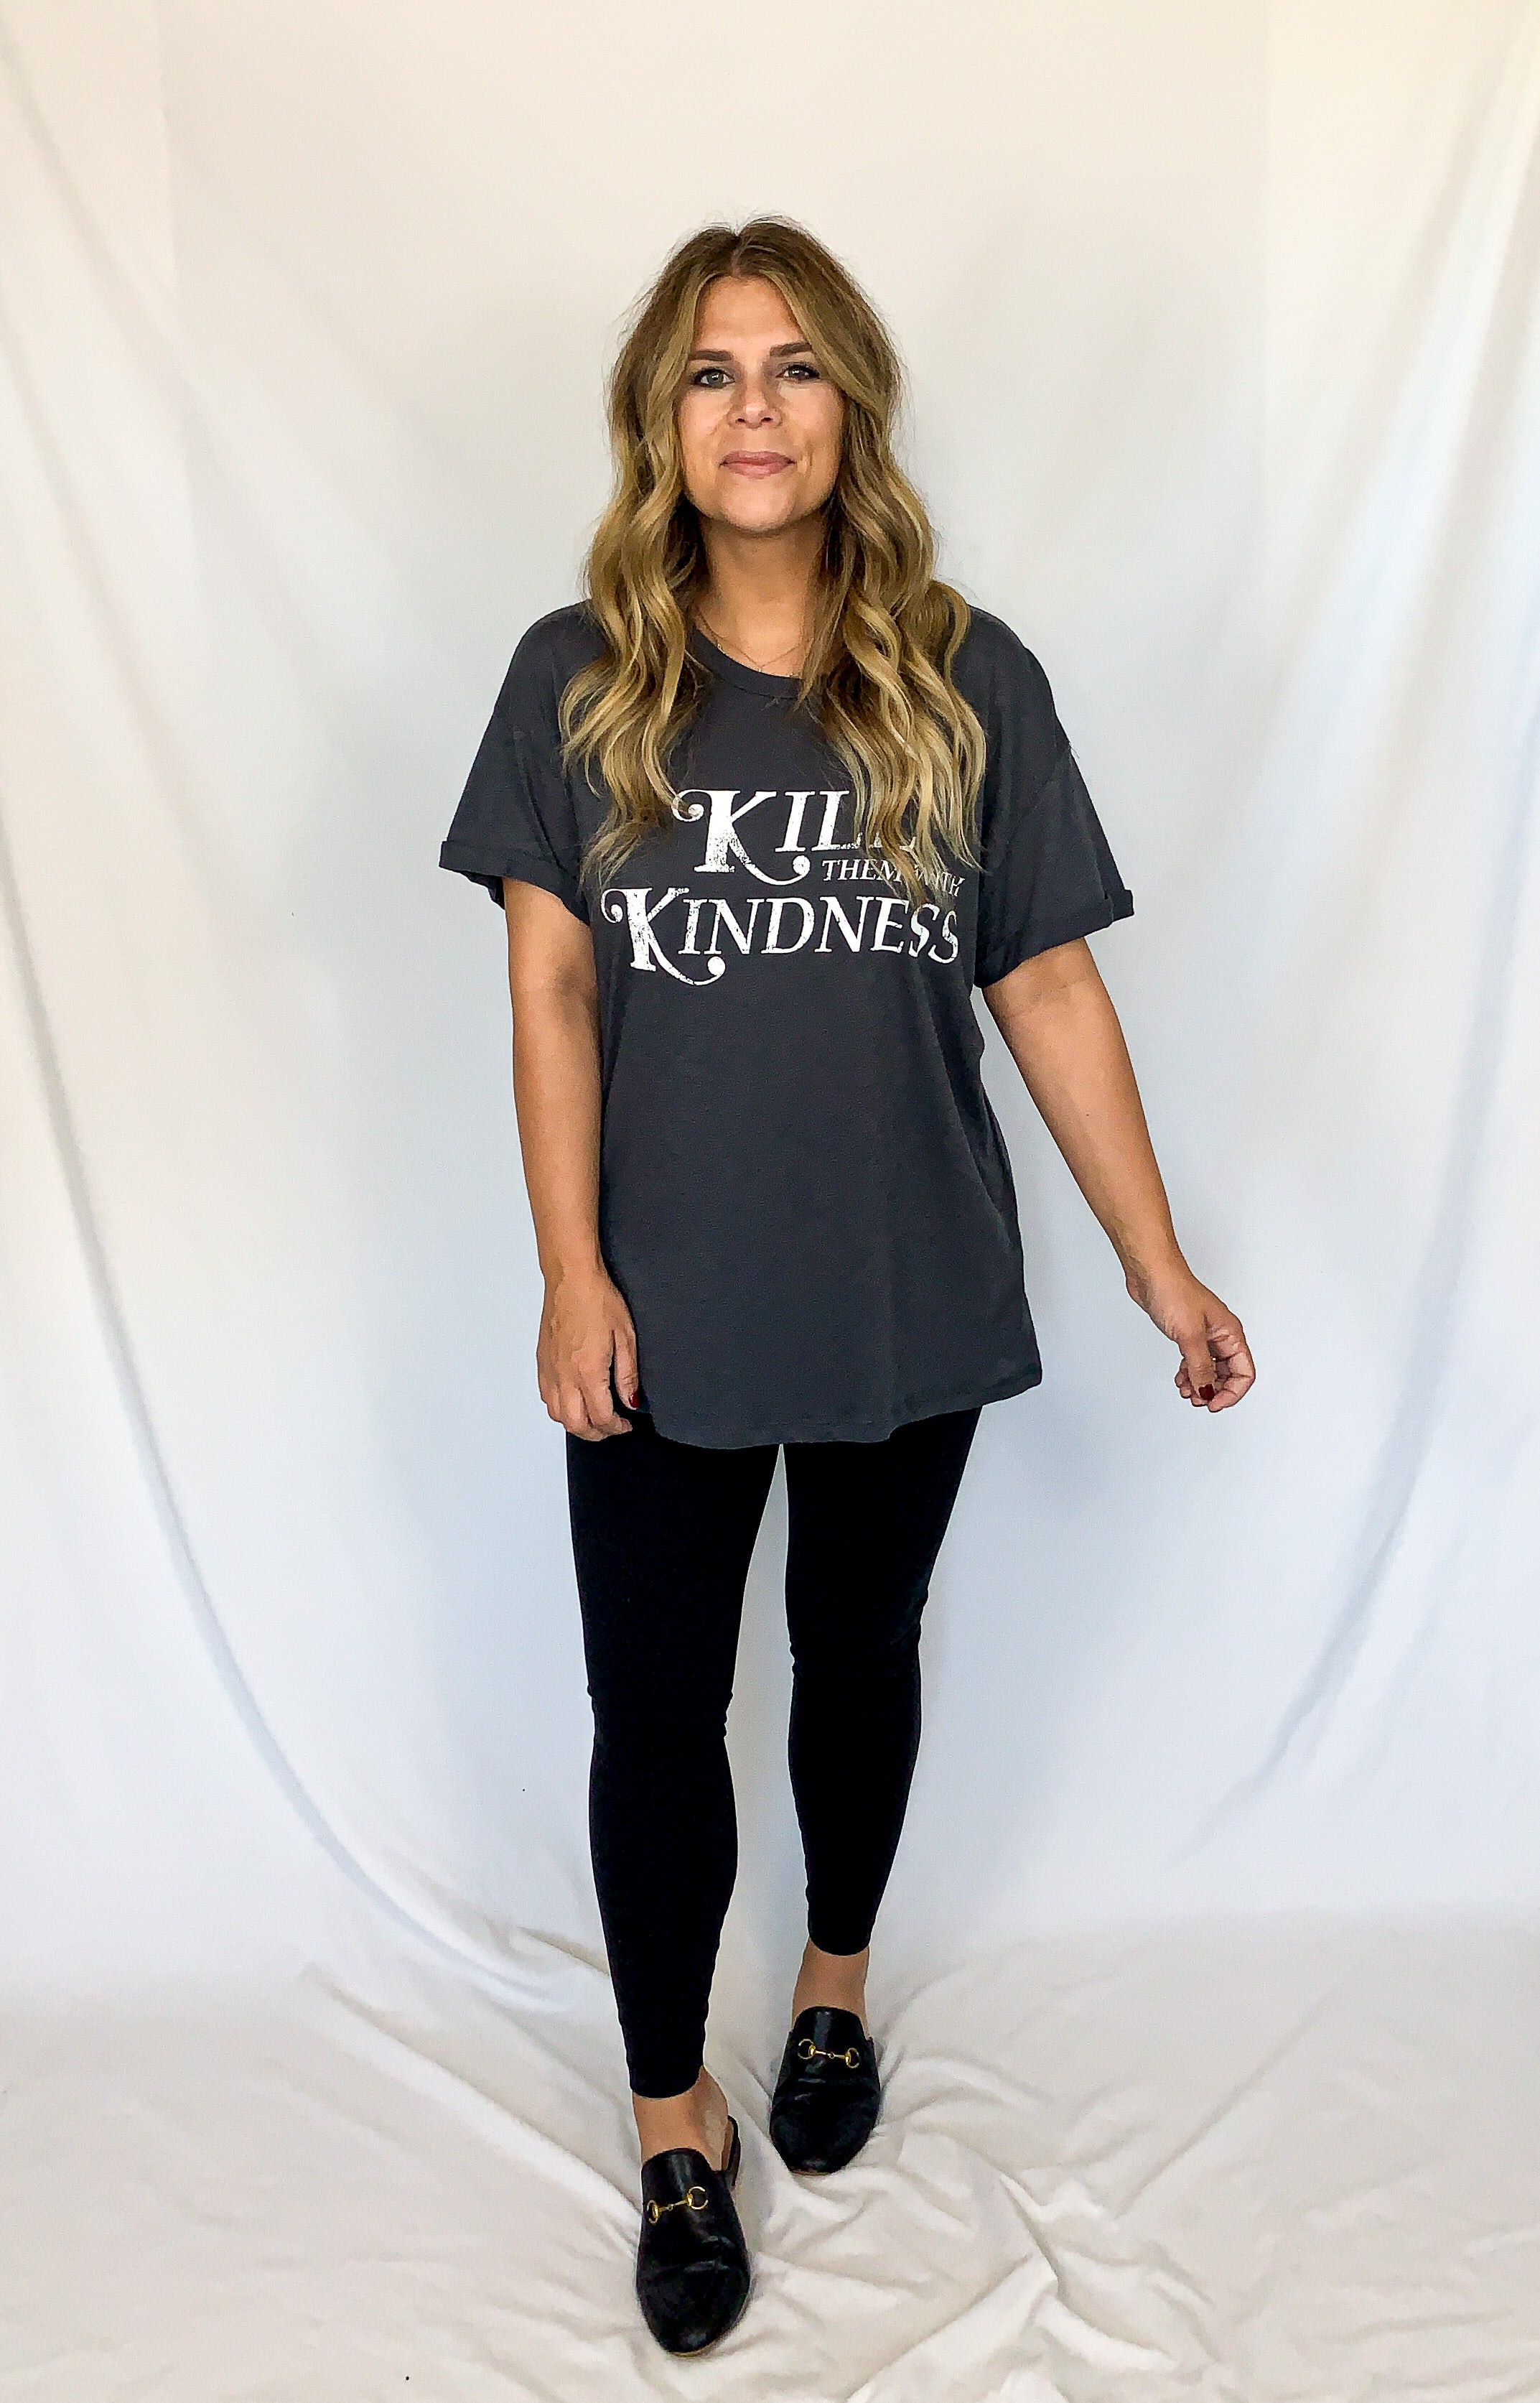 With Kindness Tee